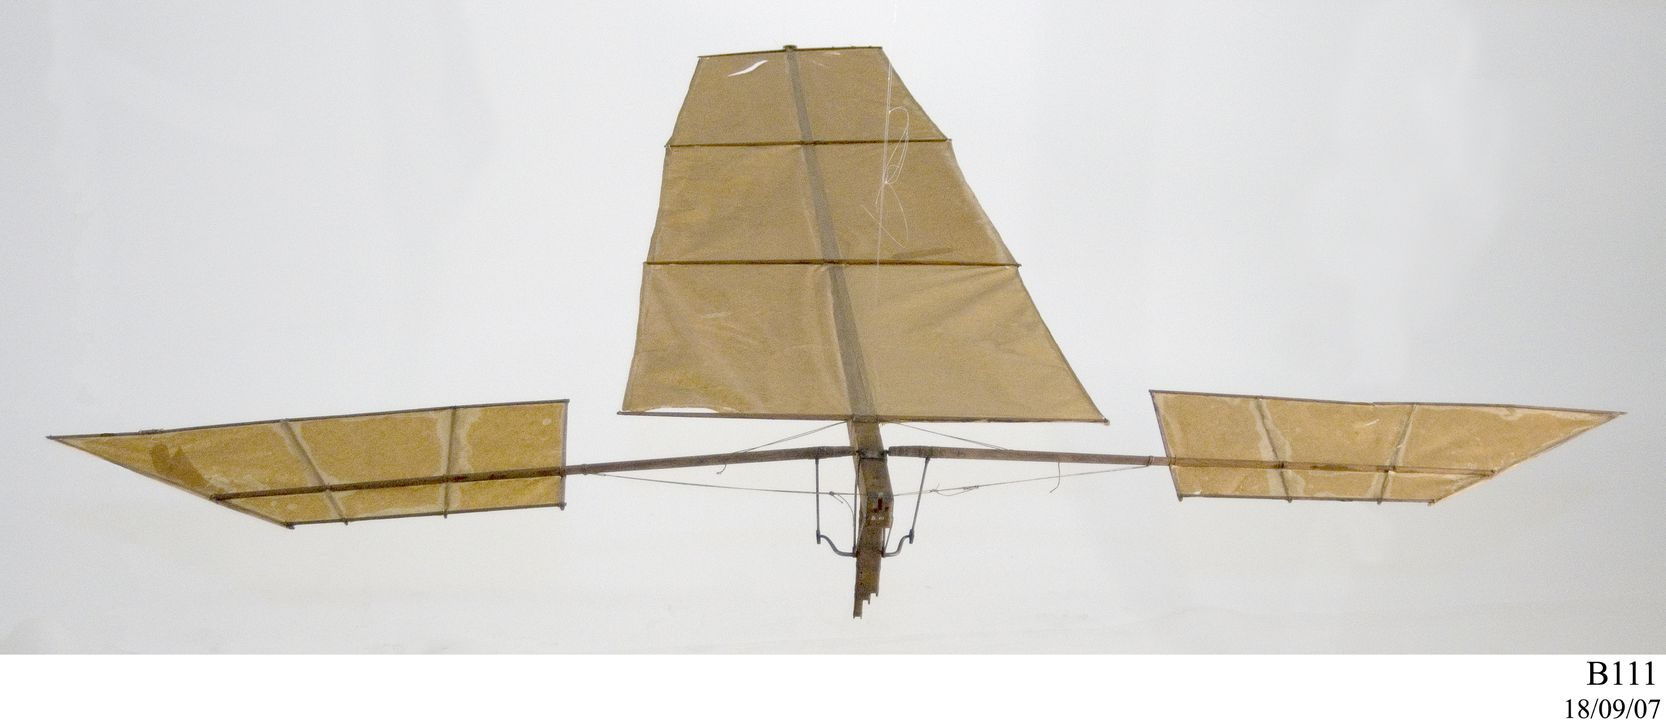 B111 Model flying machine, flapping wing 'Experiment C', paper / wood / metal / plastic / string, made by Lawrence Hargrave, Rushcutters Bay, New South Wales, Australia, 1887. Click to enlarge.